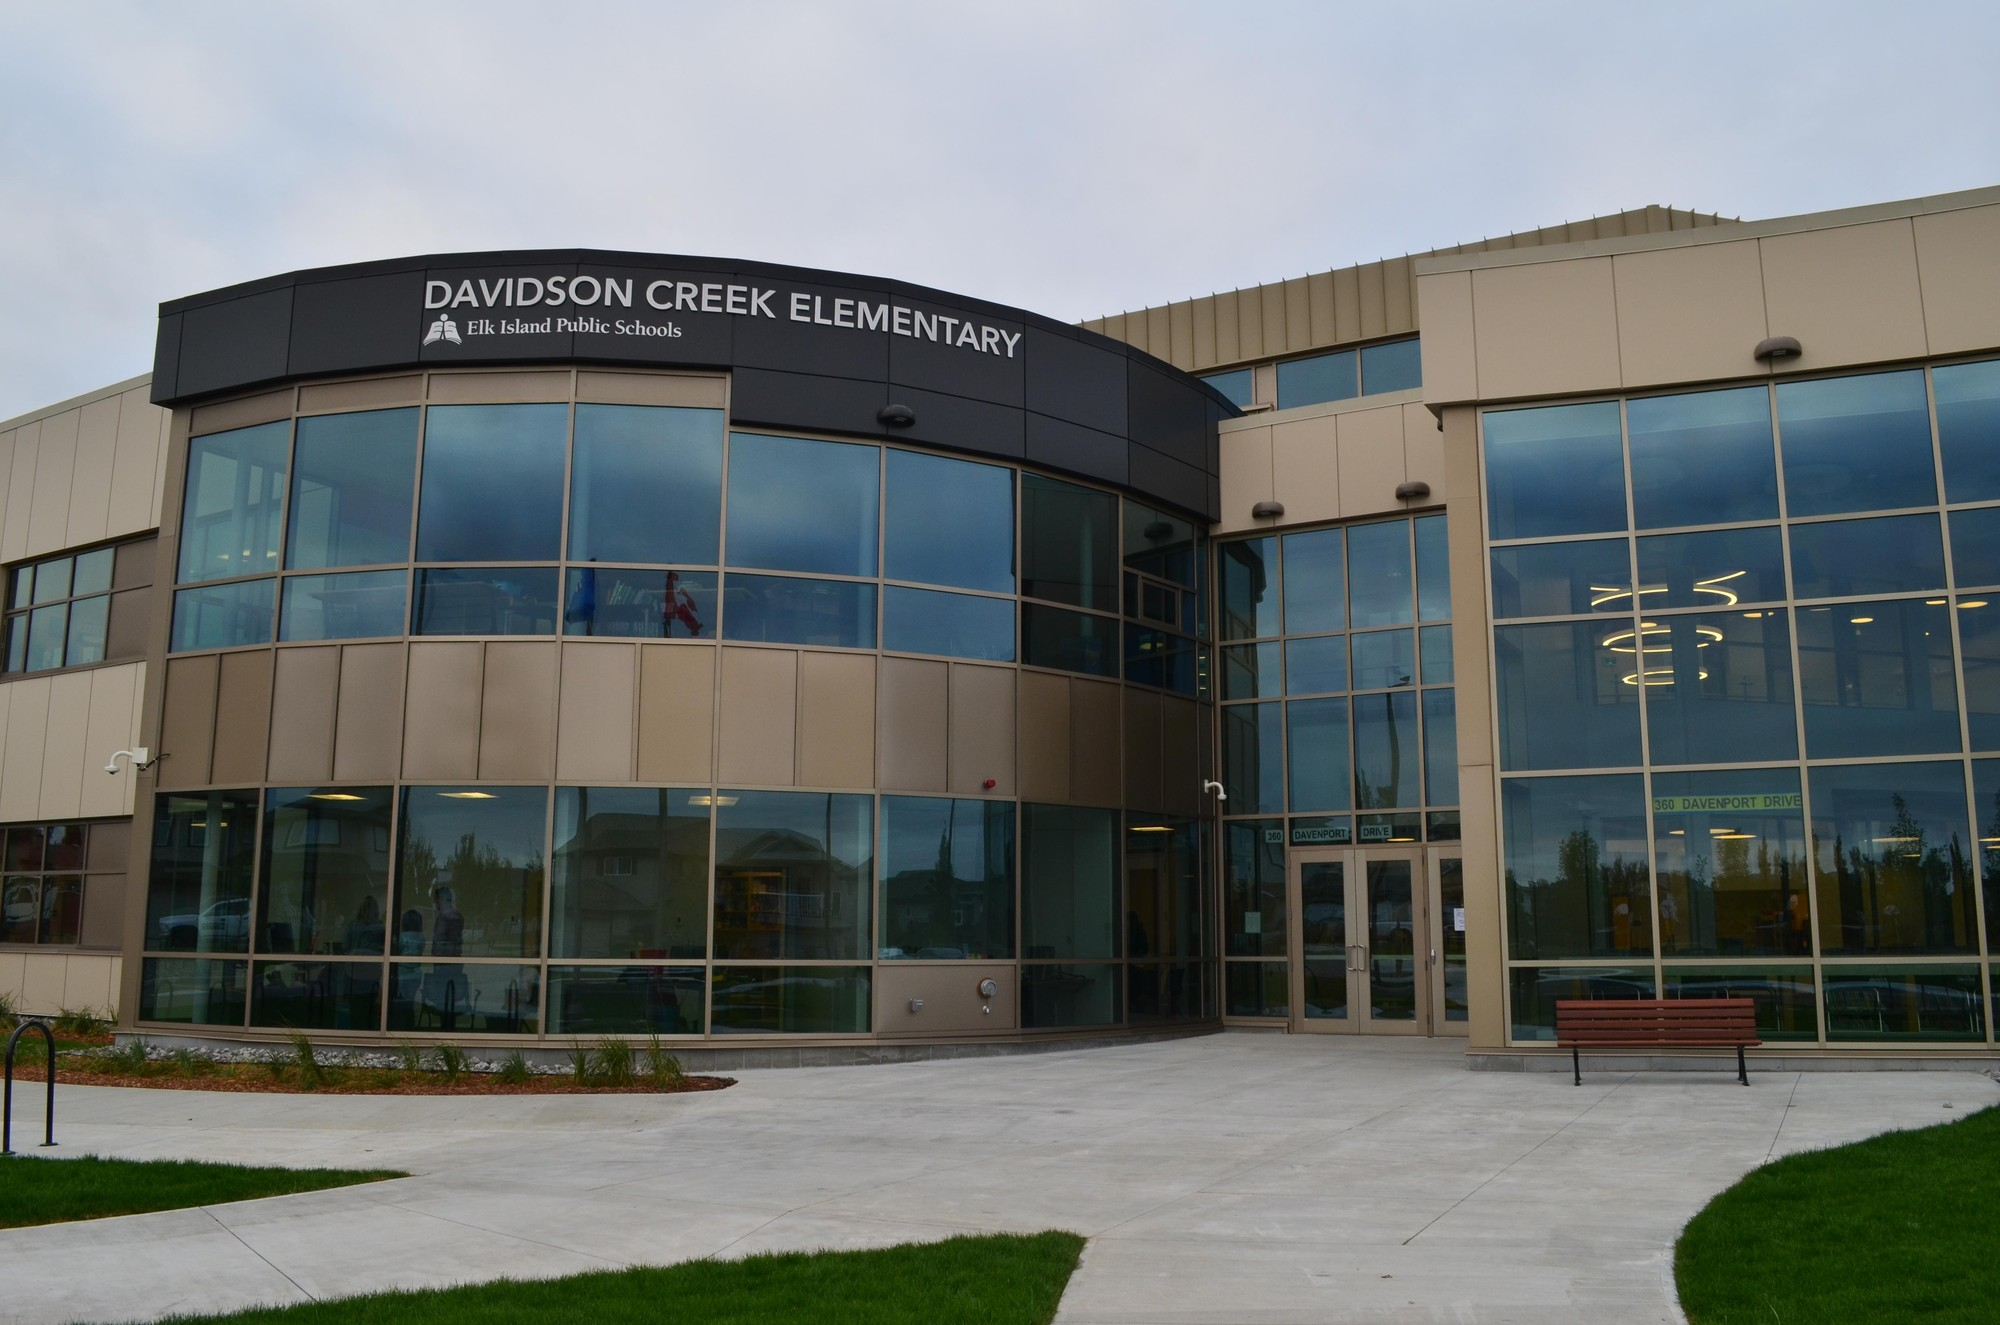 EIPS celebrates the grand opening of Davidson Creek